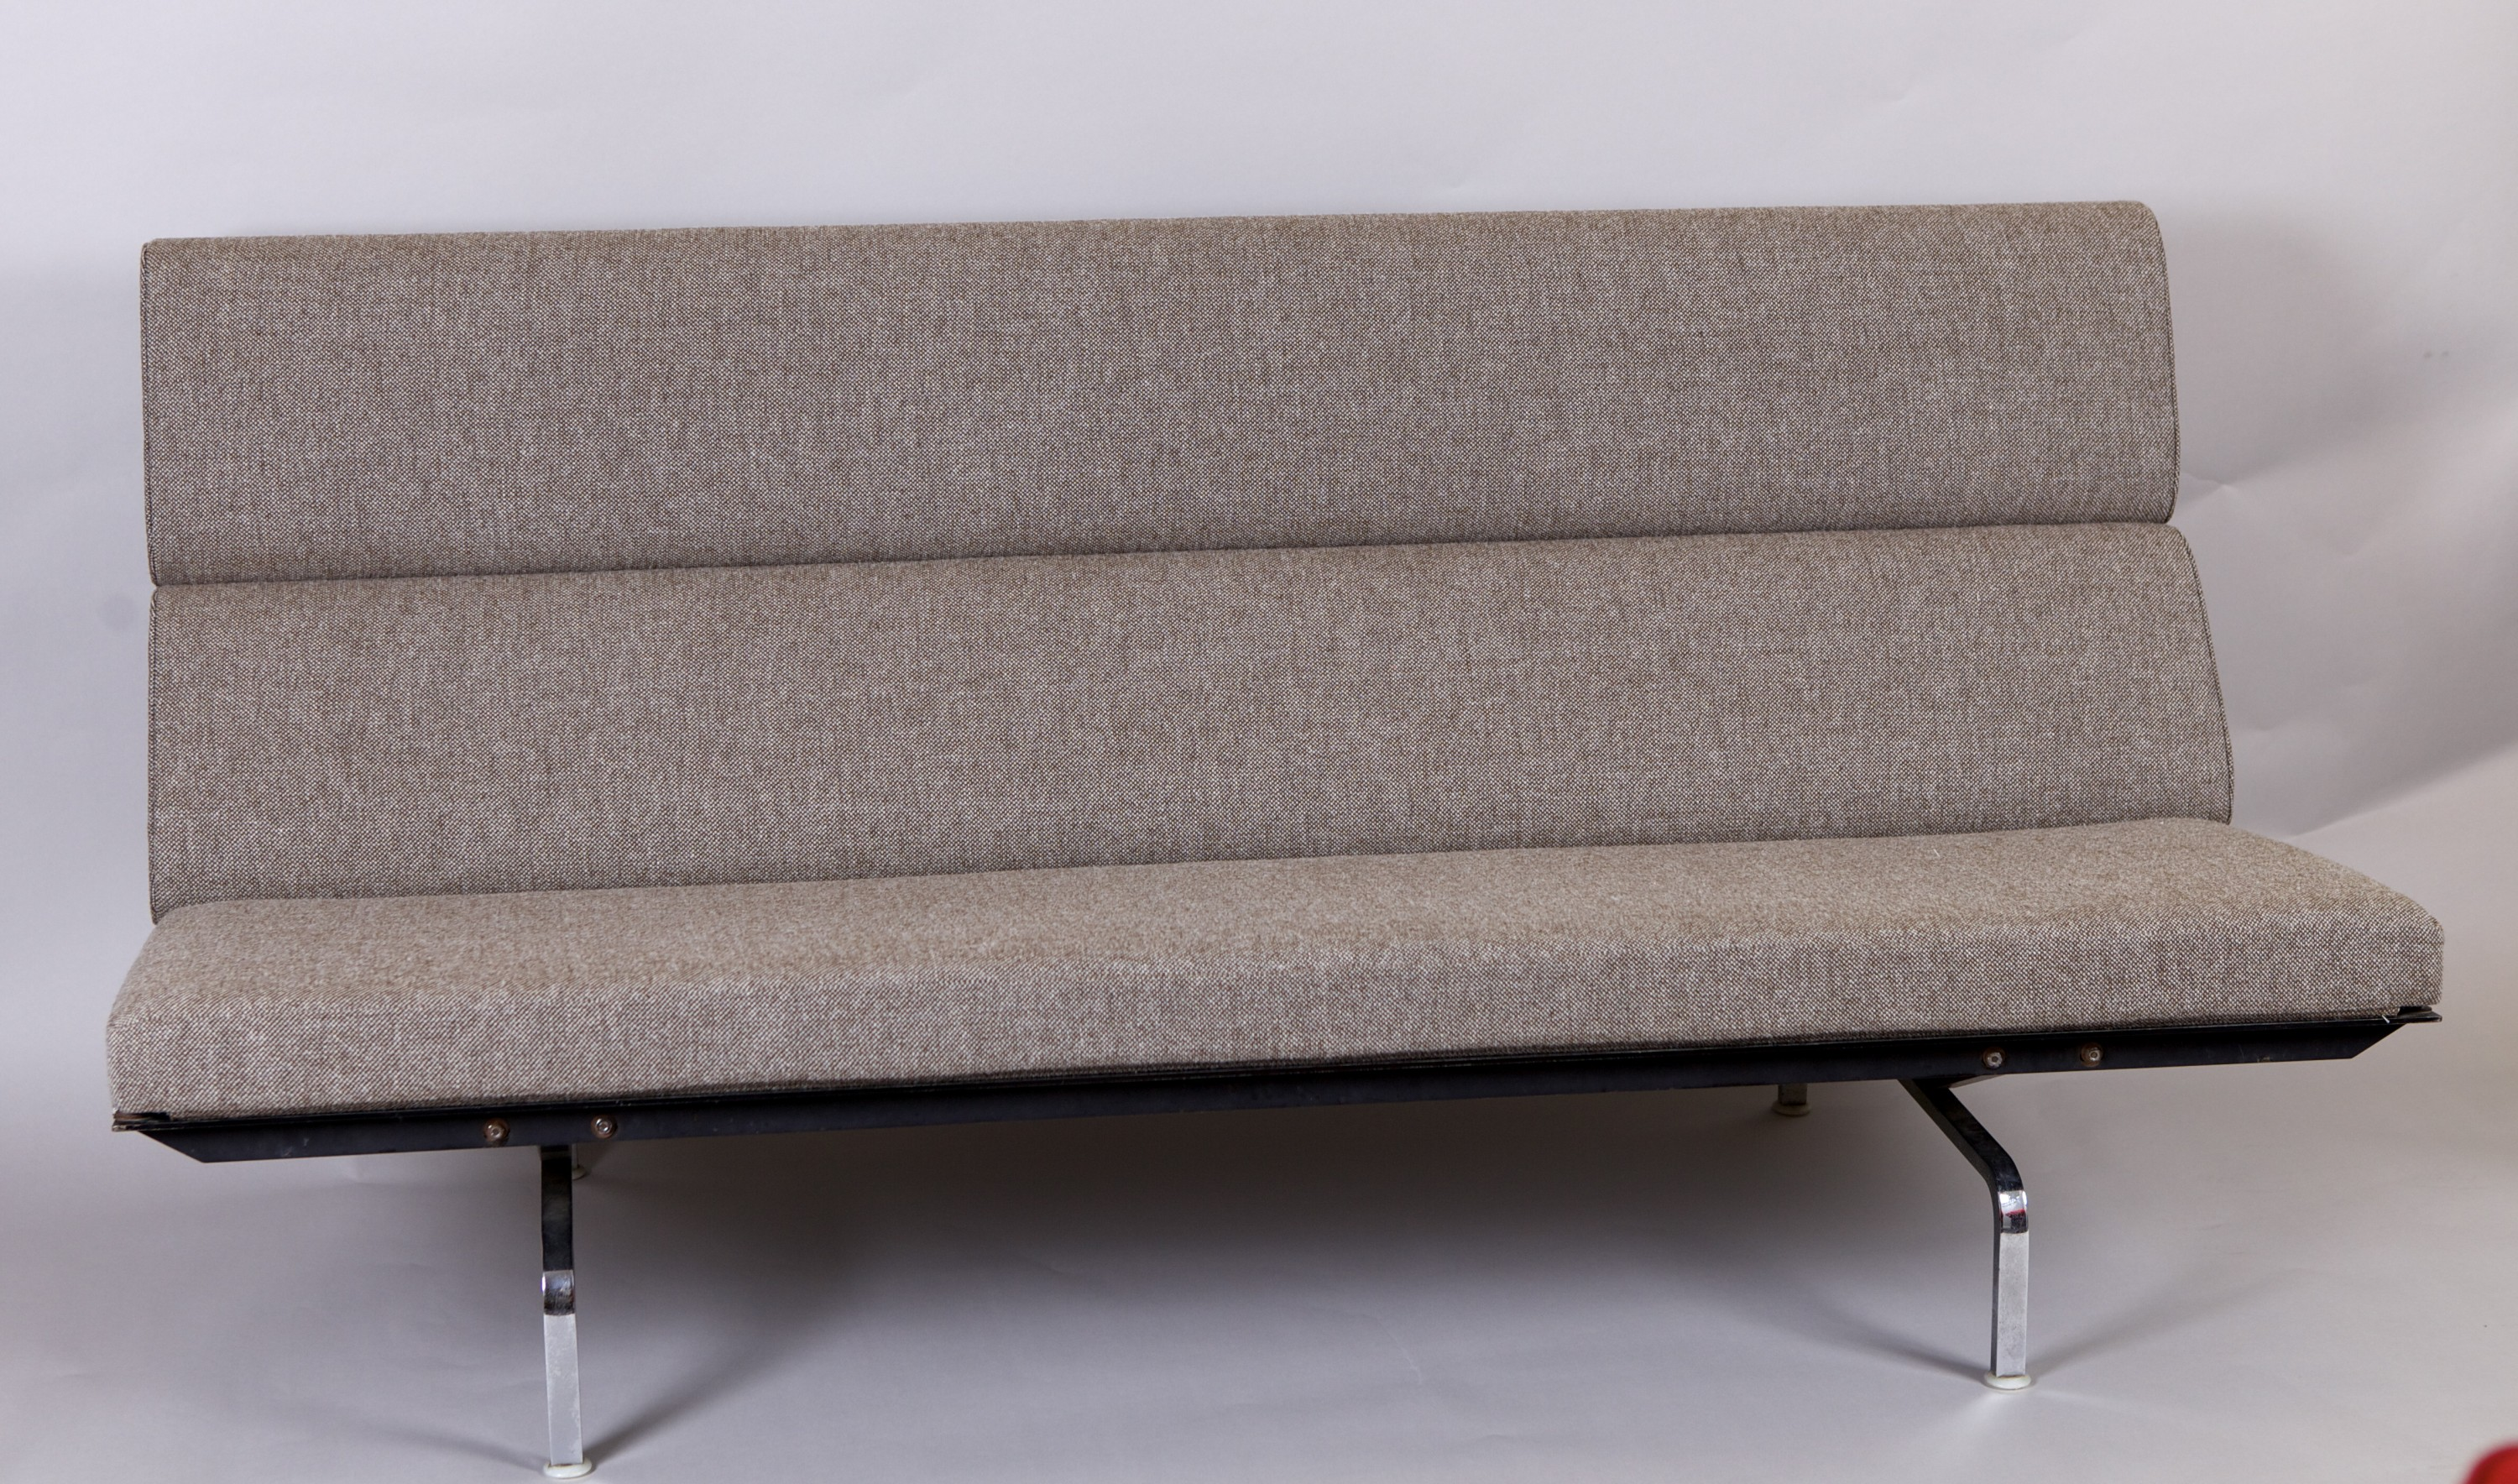 Collection of design mobilier 1950 2000 vintage et contemporain sofa compact de charles for Sofa contemporain design